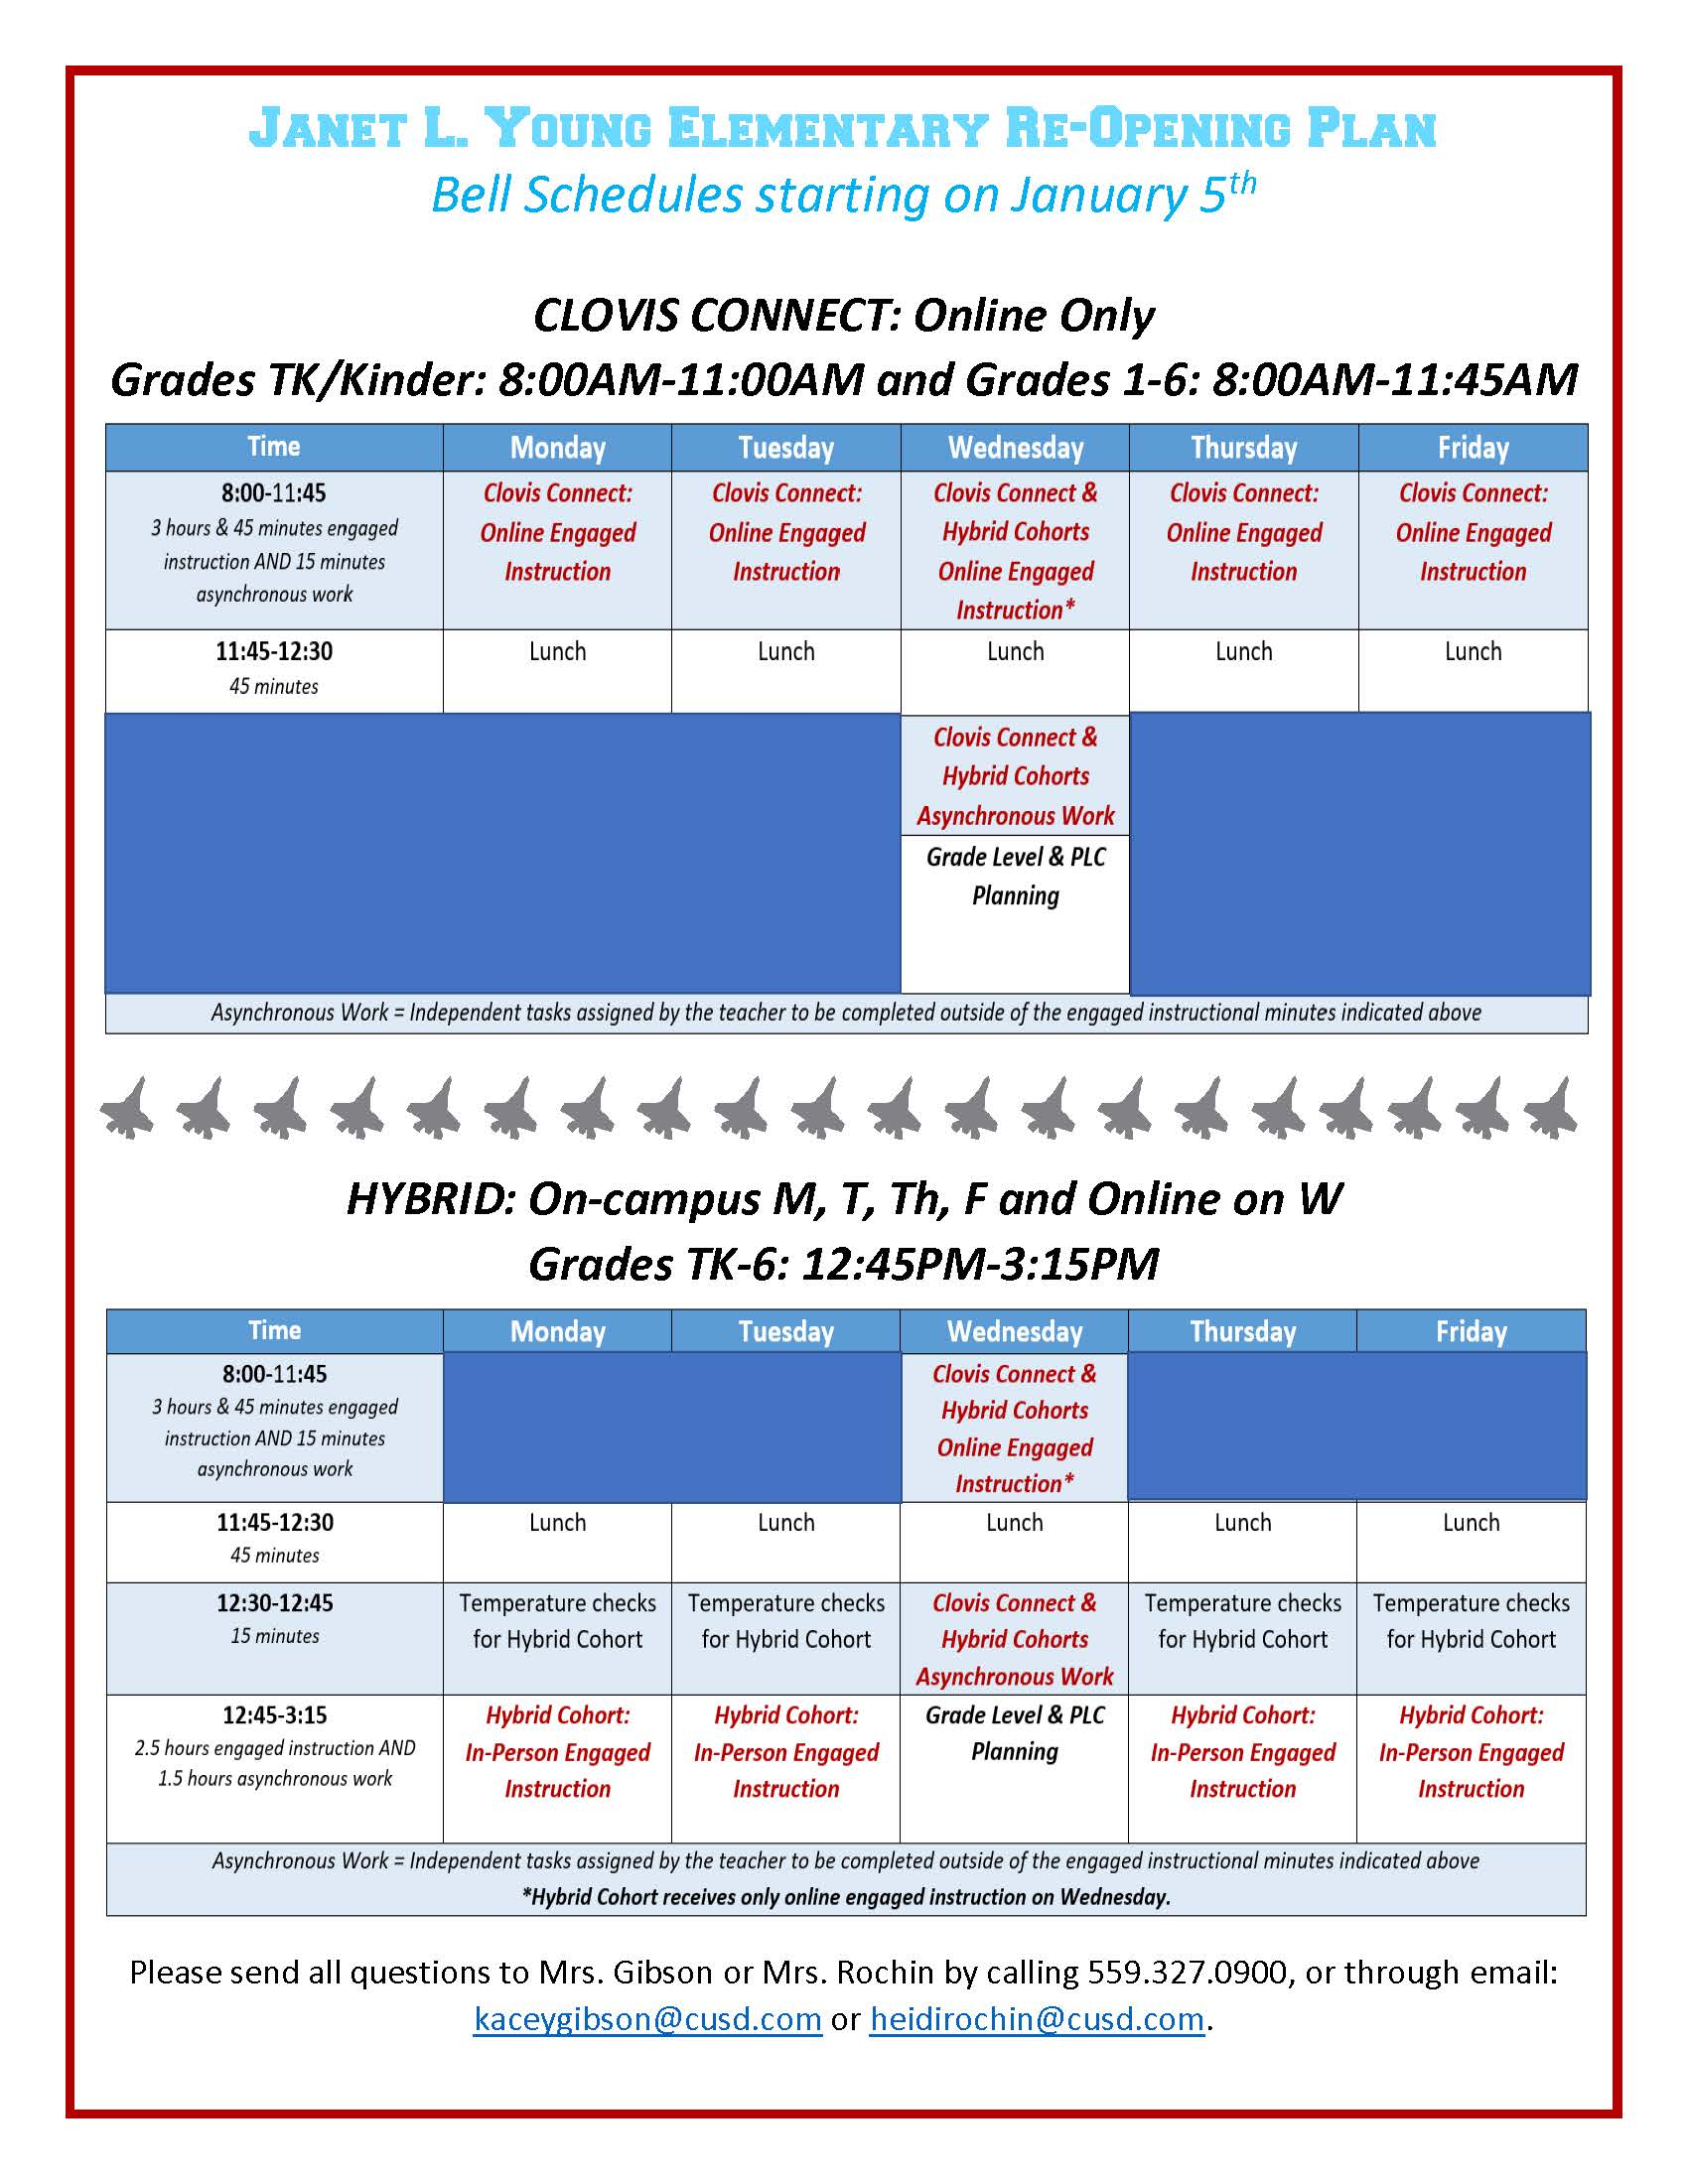 Bell Schedule effective January 5, 2021